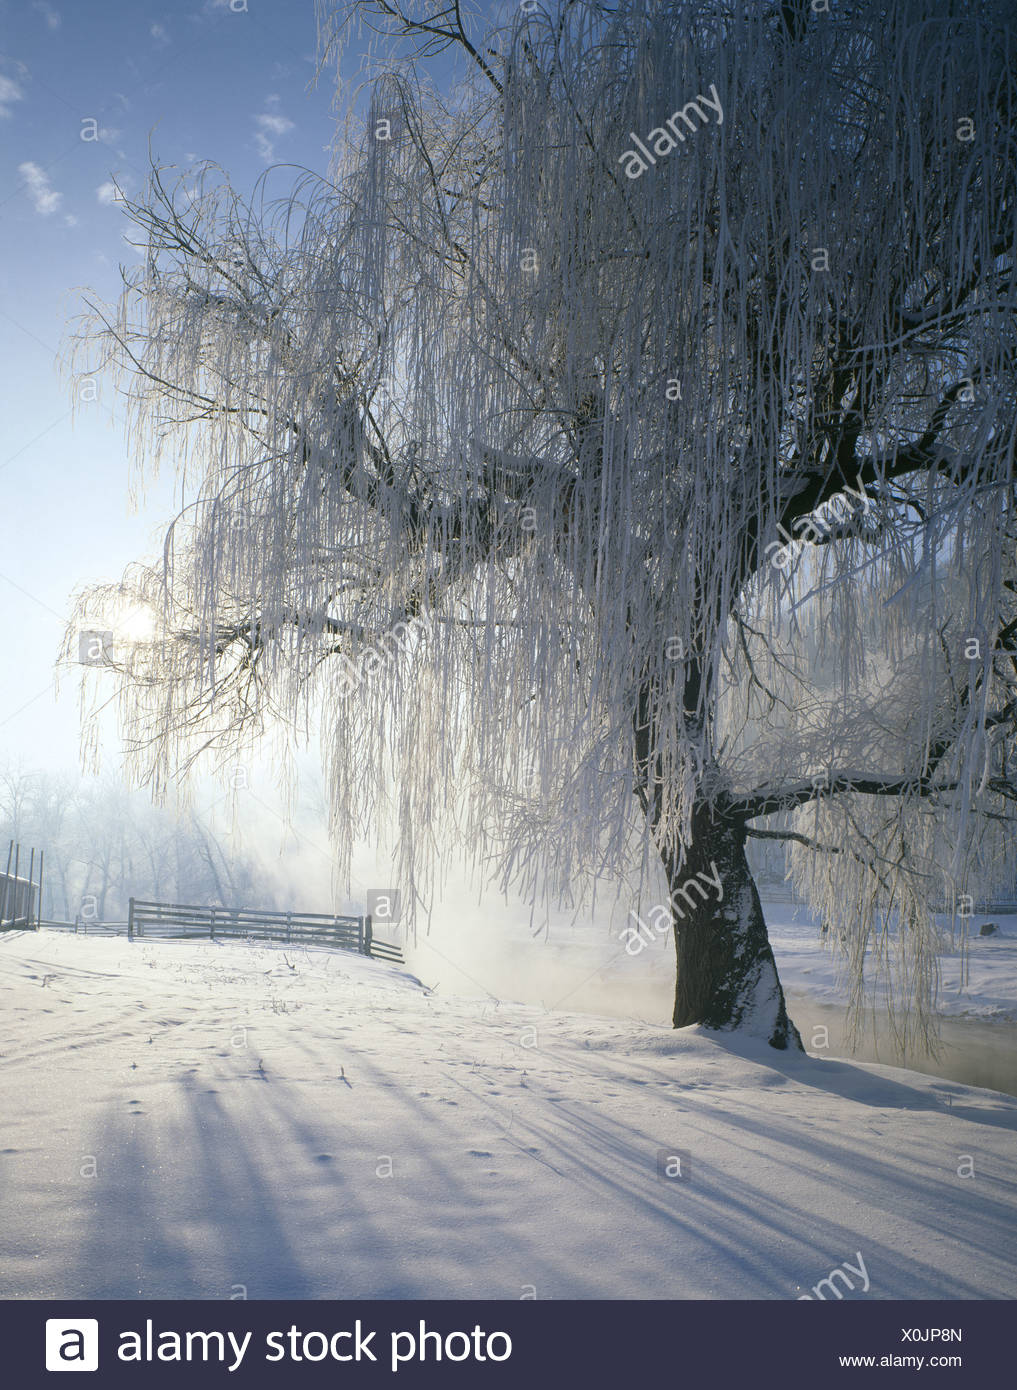 SUN SHINING THROUGH WILLOW TREE WITH HOAR FROST - Stock Image